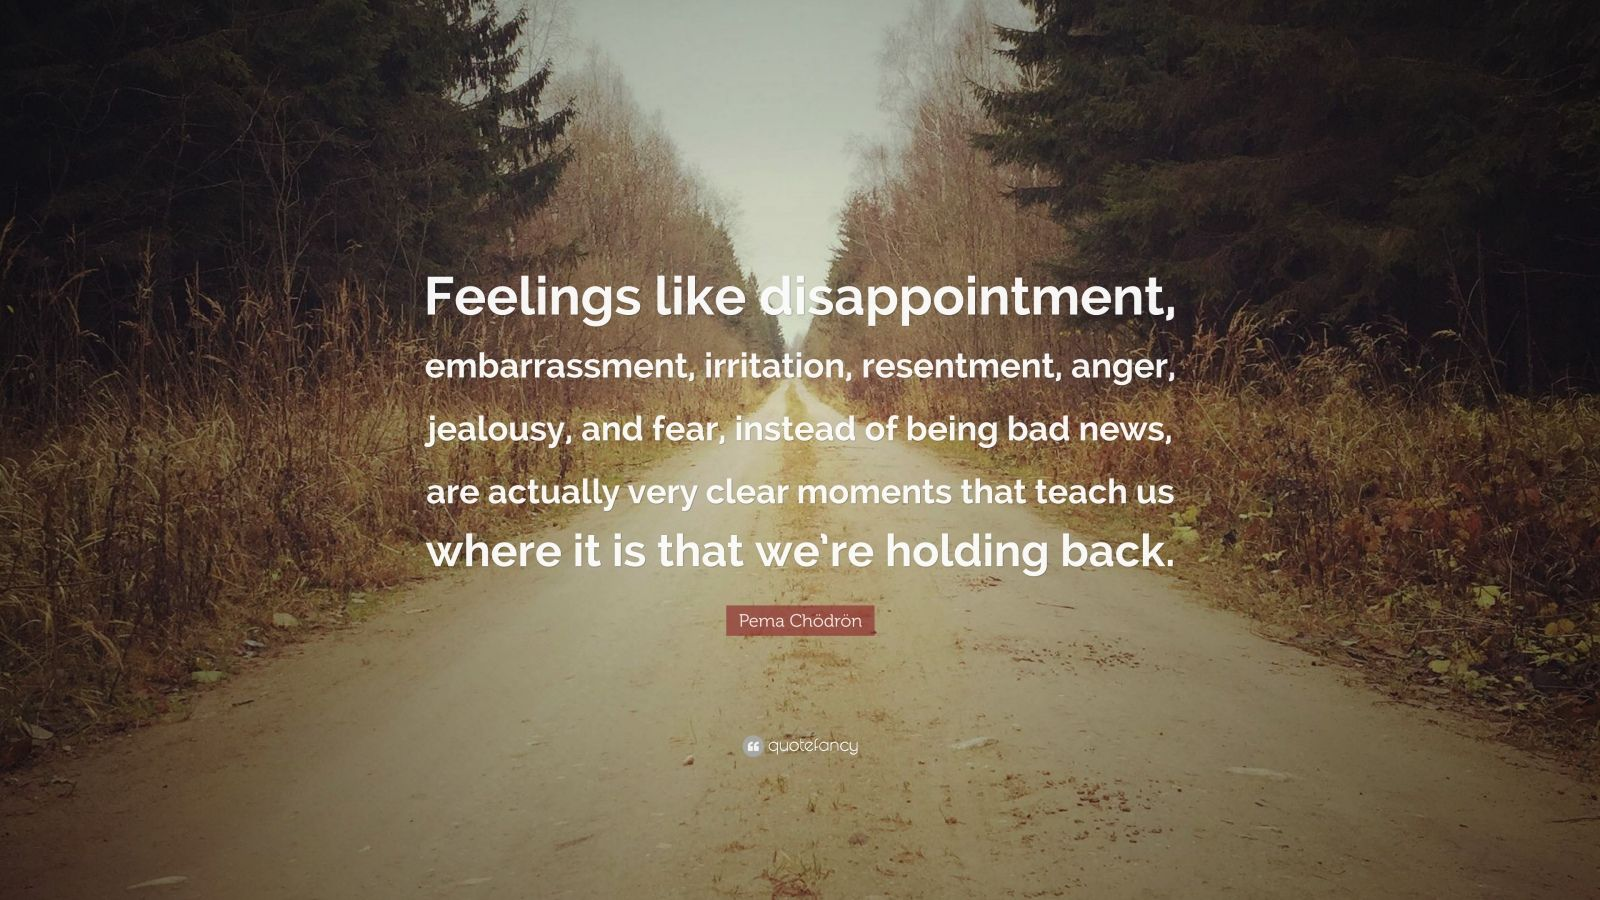 """Pema Chödrön Quote: """"Feelings like disappointment, embarrassment, irritation, resentment, anger, jealousy, and fear, instead of being bad news, are actually very clear moments that teach us where it is that we're holding back."""""""